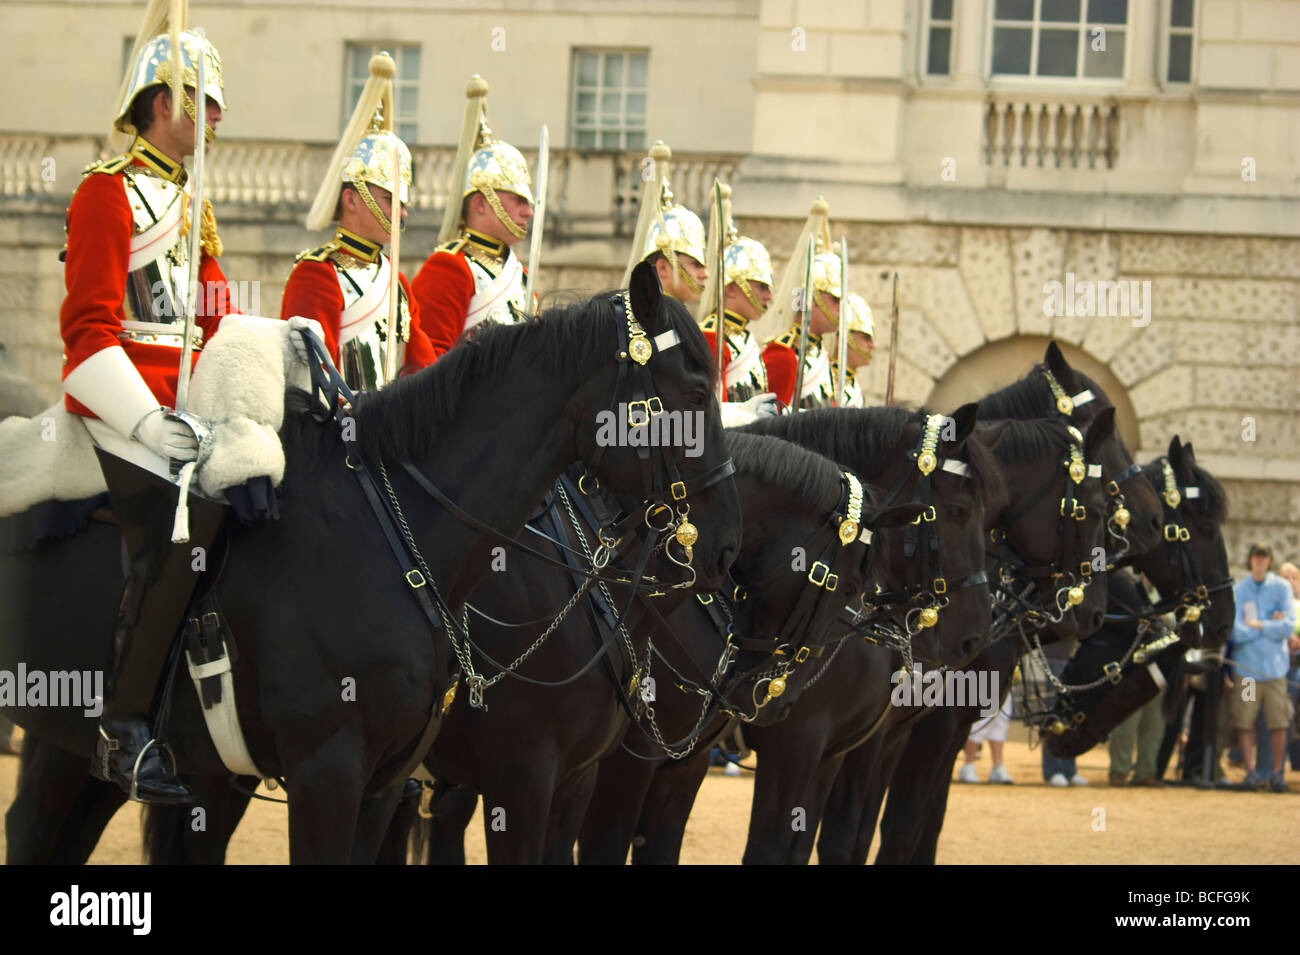 Horseguards  parade in St.James'Park ,central London England UK - Stock Image